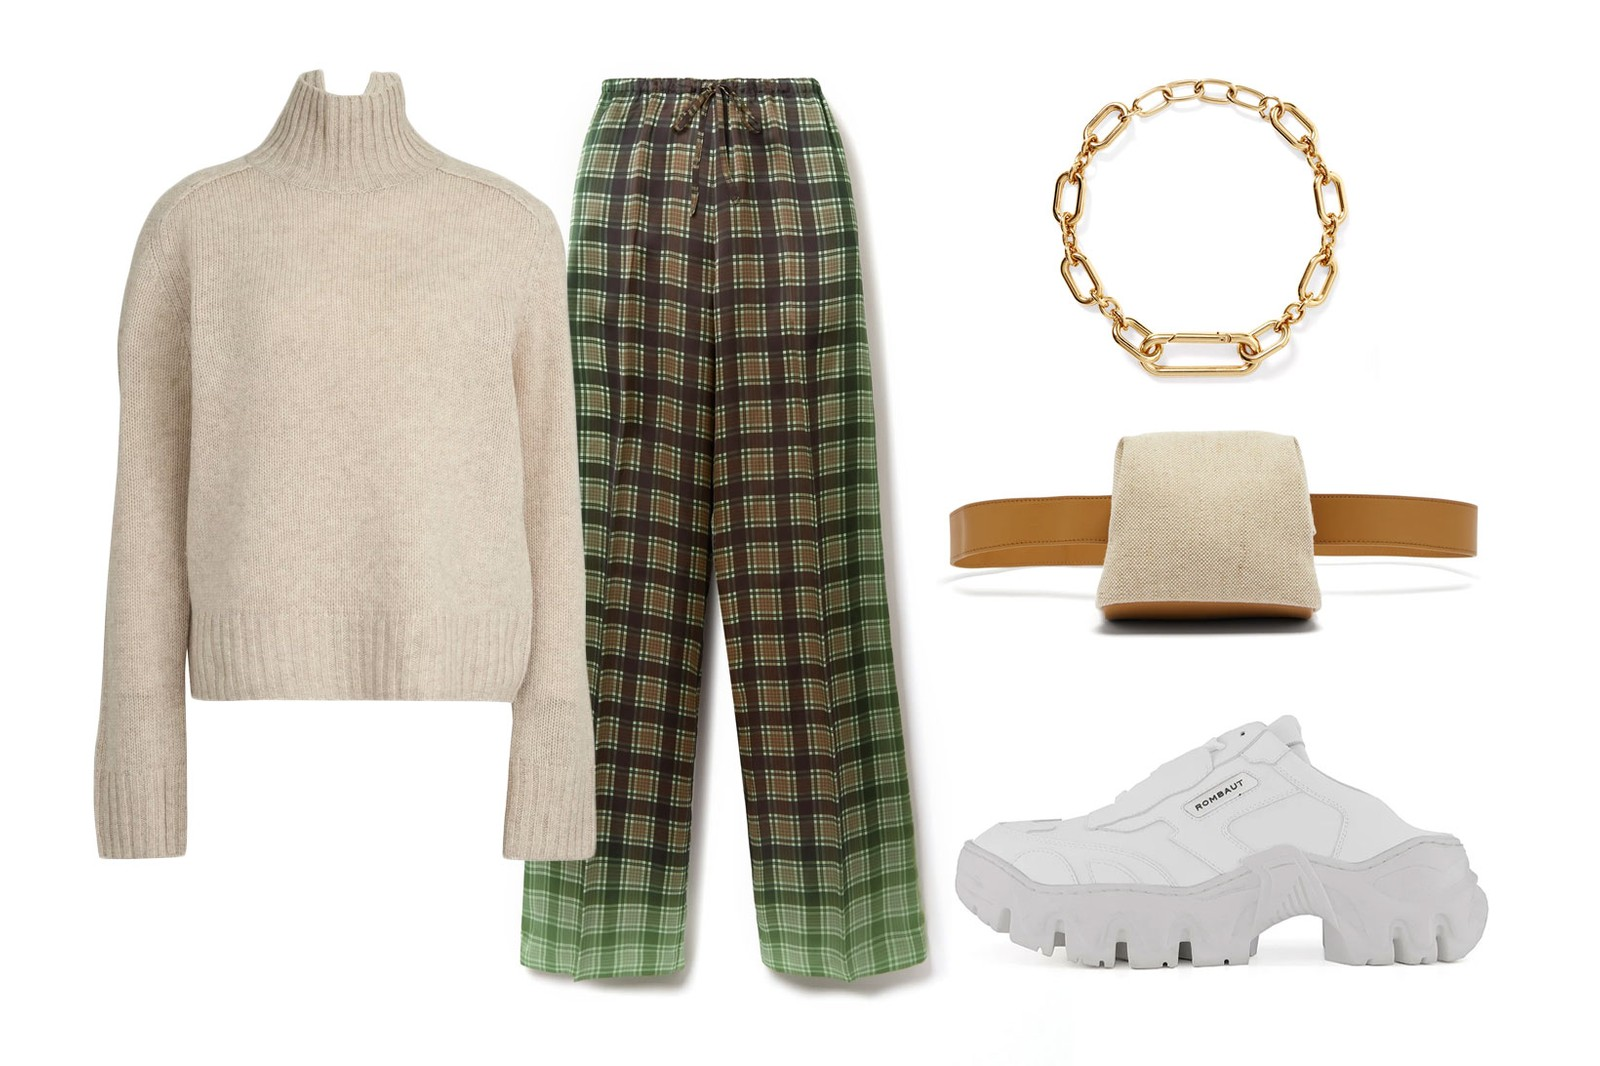 beige fall winter outfit style guide acne studios knit sweater dries van noten check pants